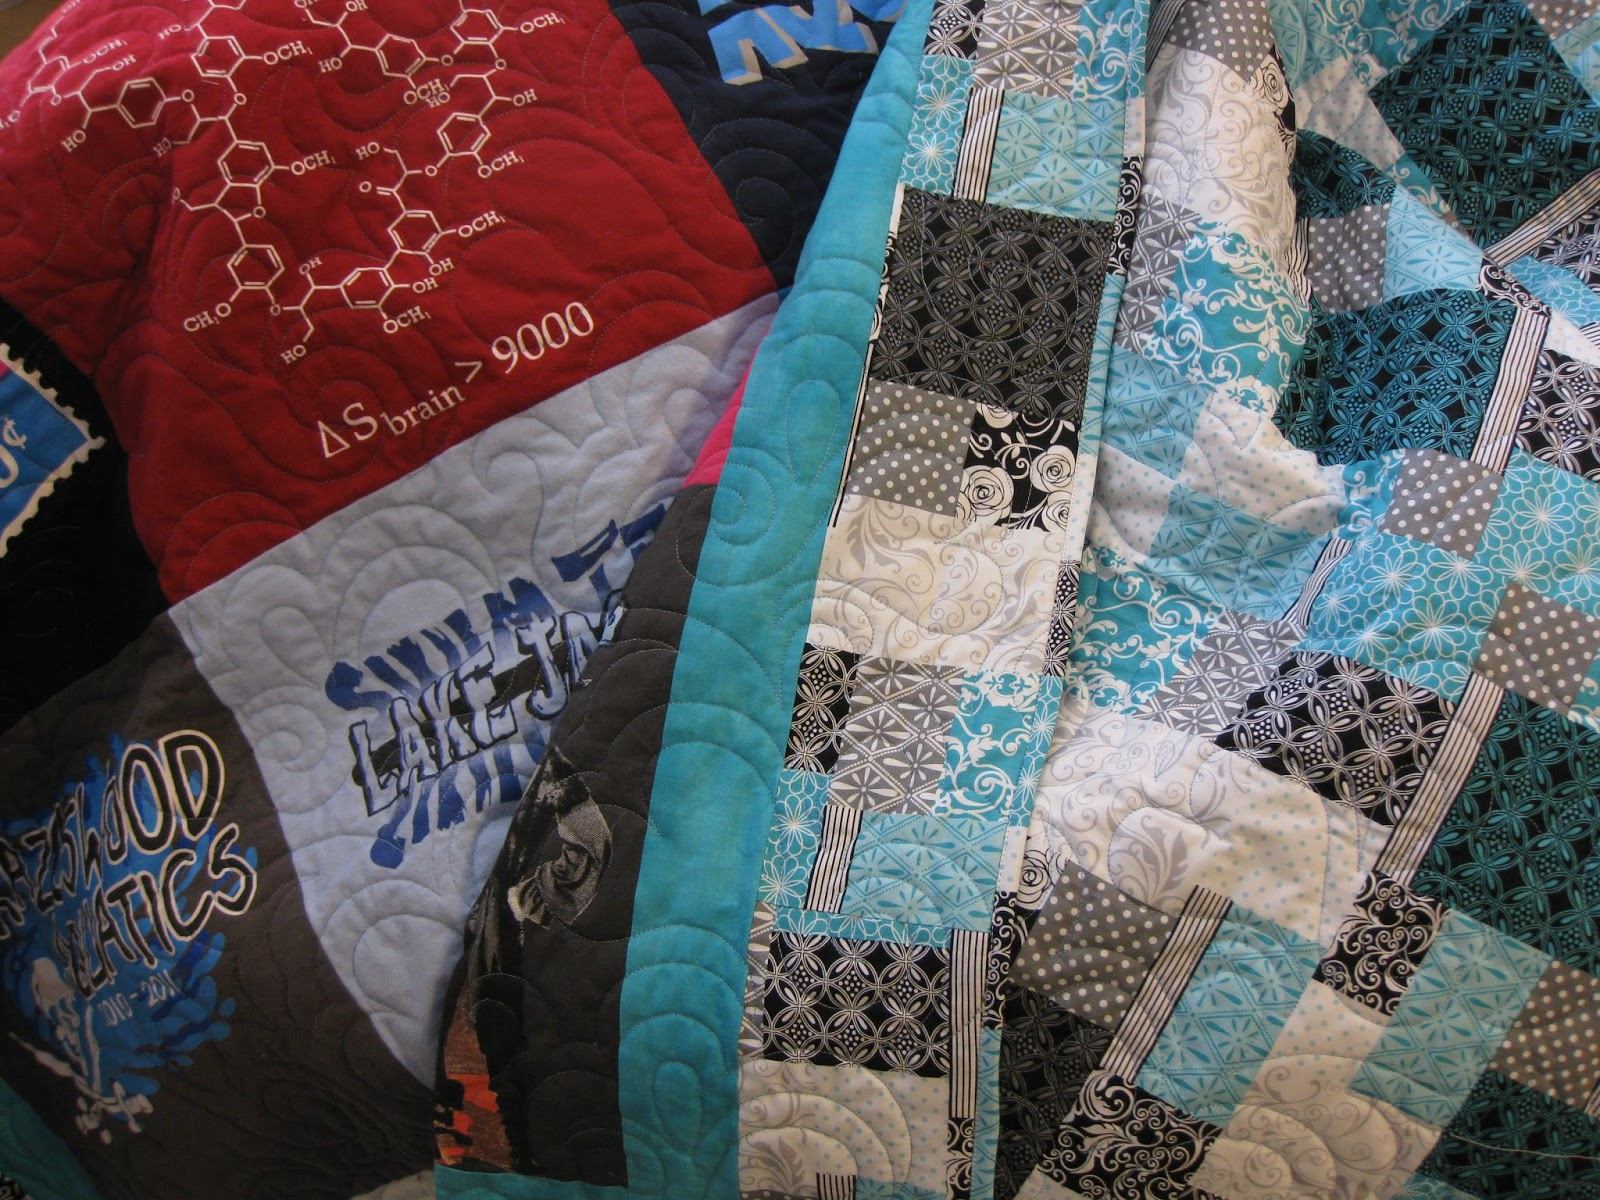 Black quilted t shirt - Rhonda S T Shirt Quilt Was Quilted With Swirls And It Is My Favorite Pattern For T Shirt Quilts